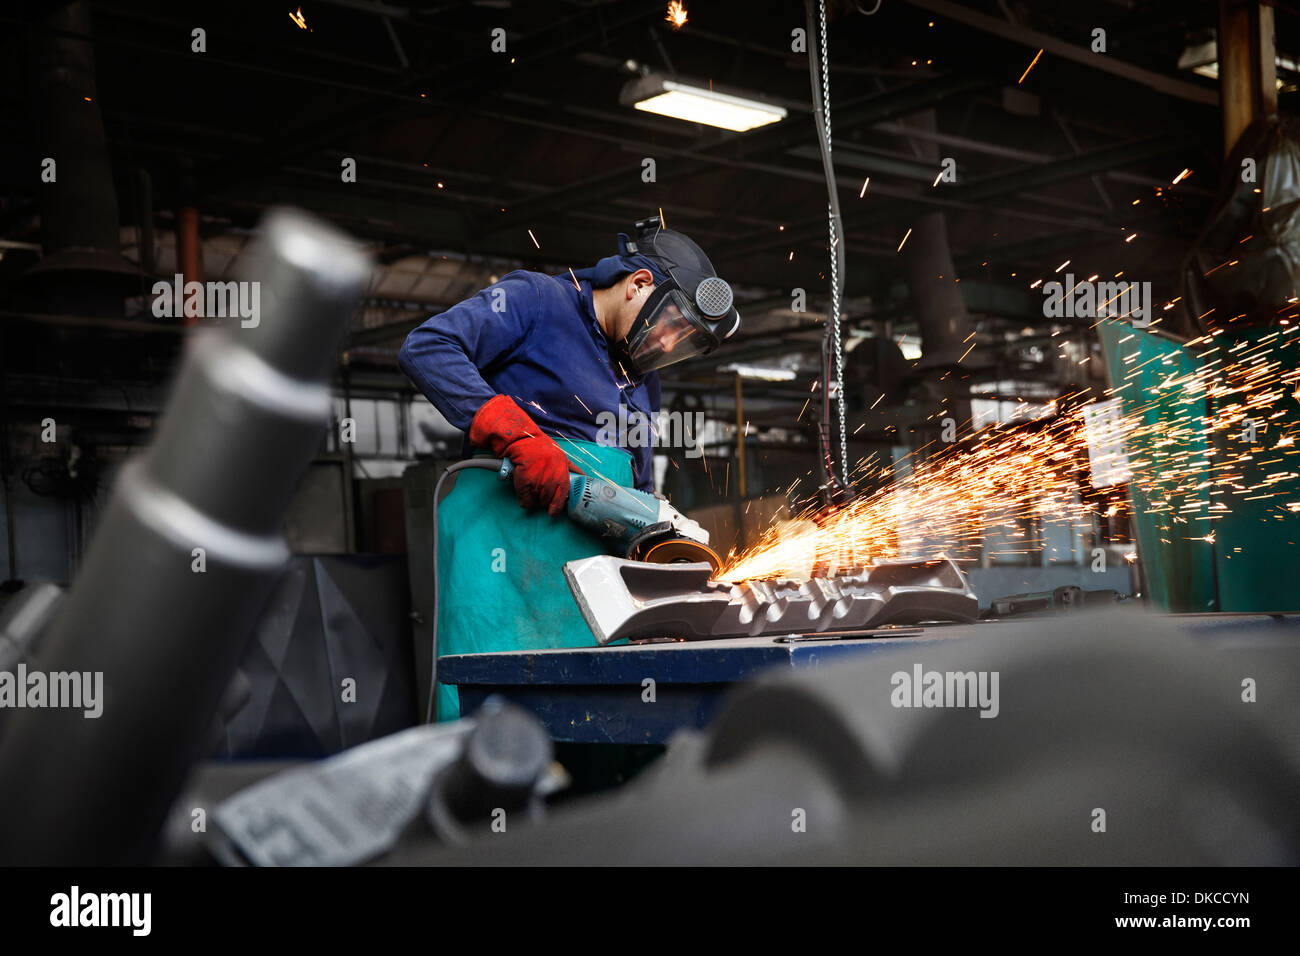 Worker grinding (linishing) flight bar (mining component), removing last traces of excess flash not removed by clipping press - Stock Image